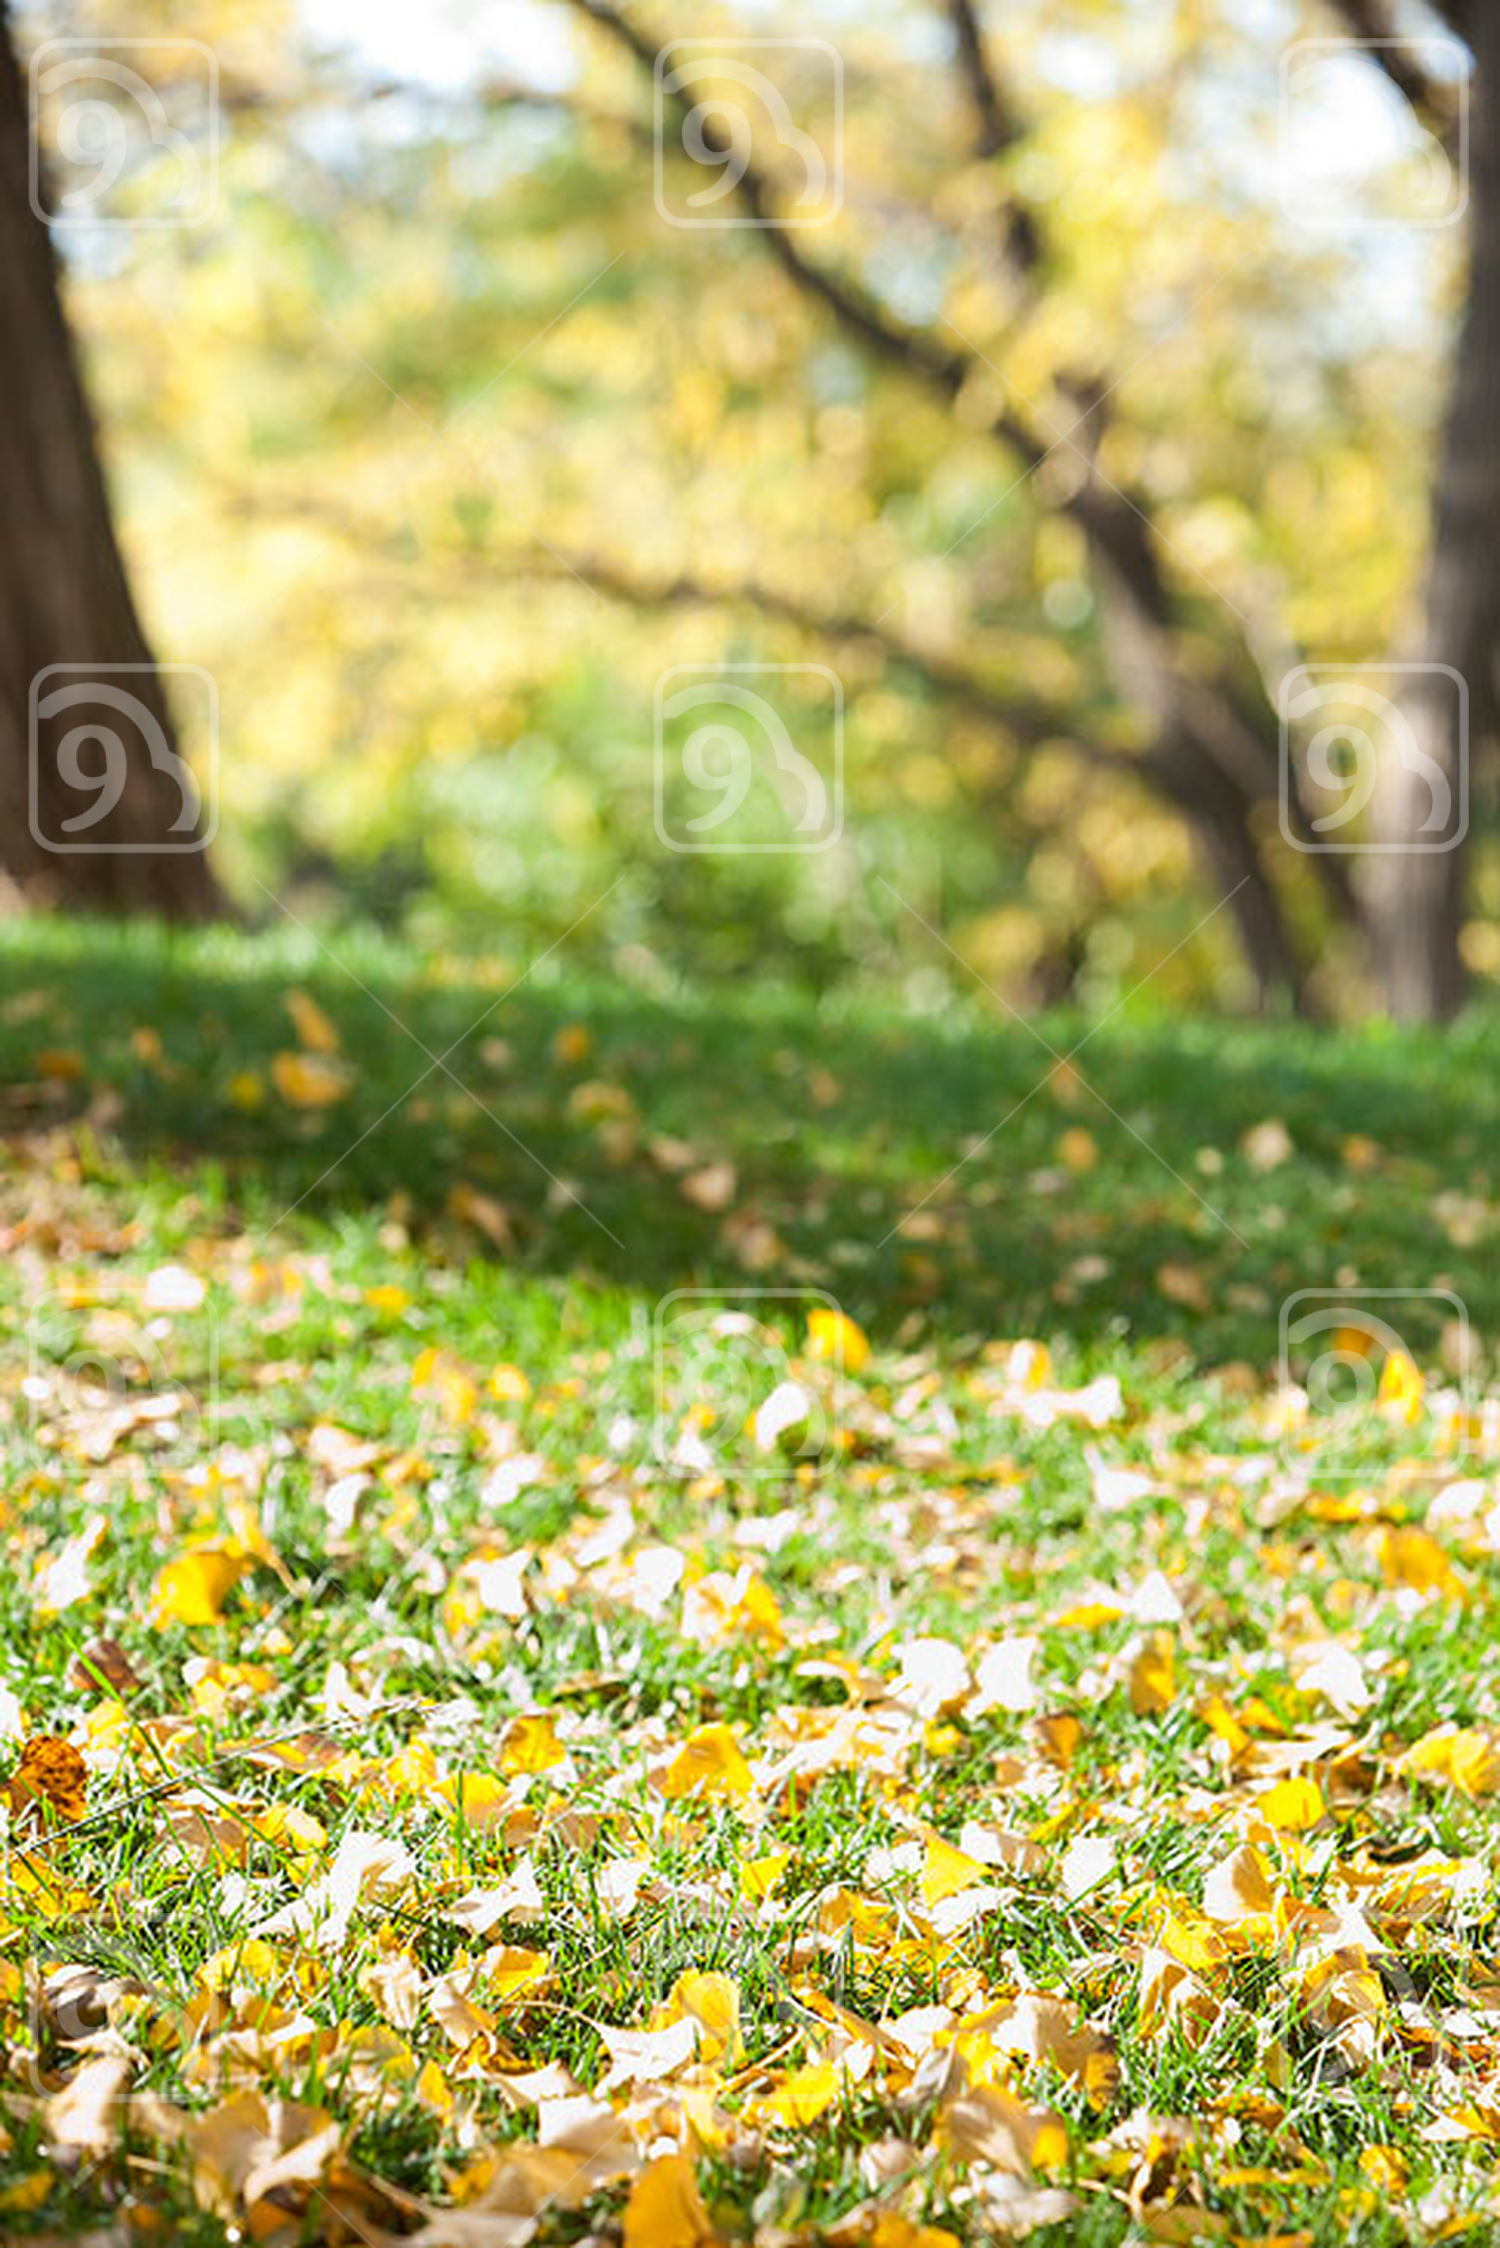 Grass, trees and leaves in Autumn